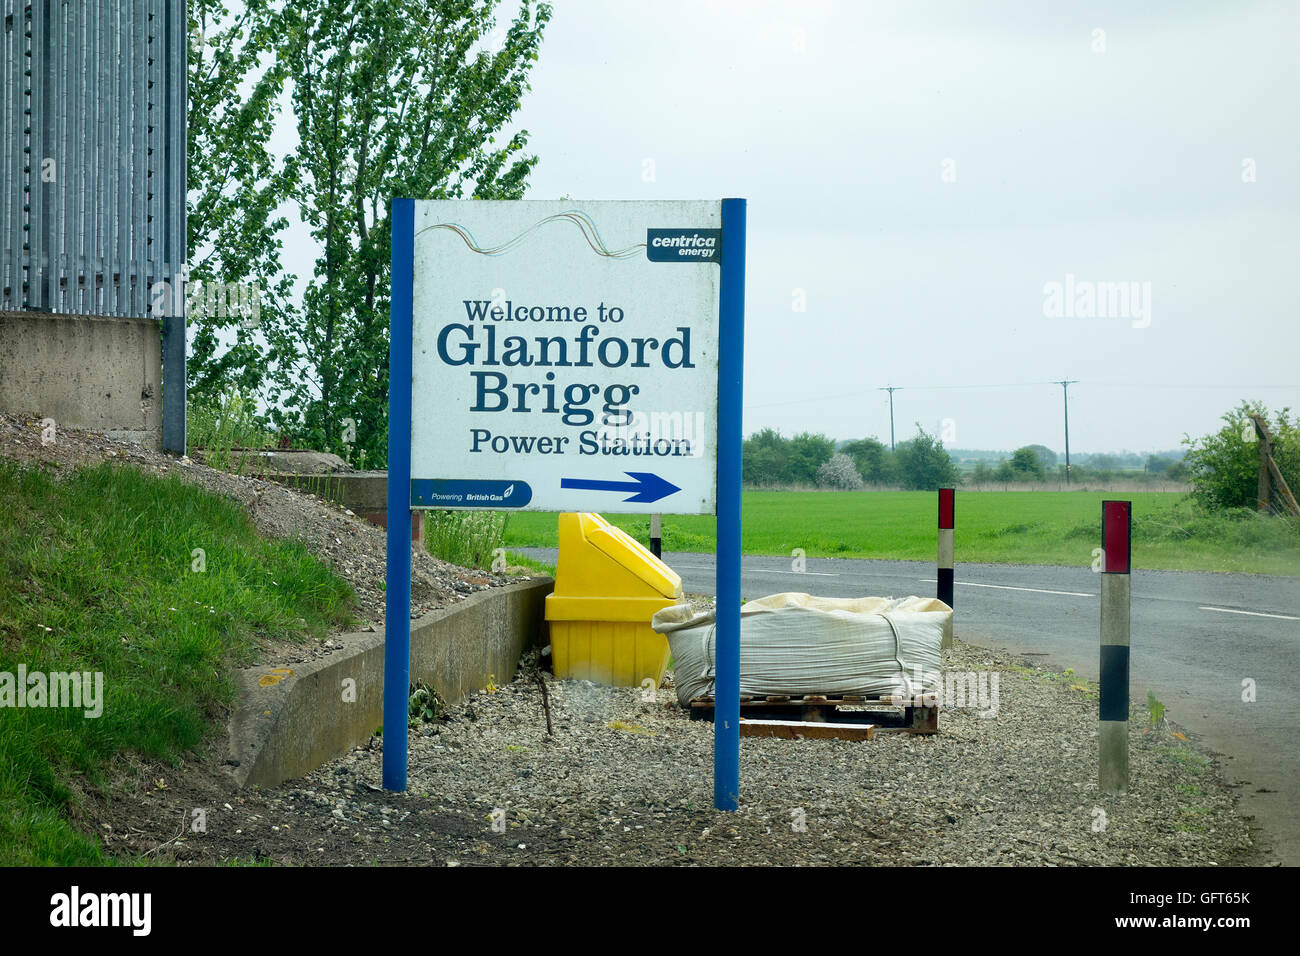 Glanford Brigg Power Station Centrica Energy British Gas Brigg England Stock Photo